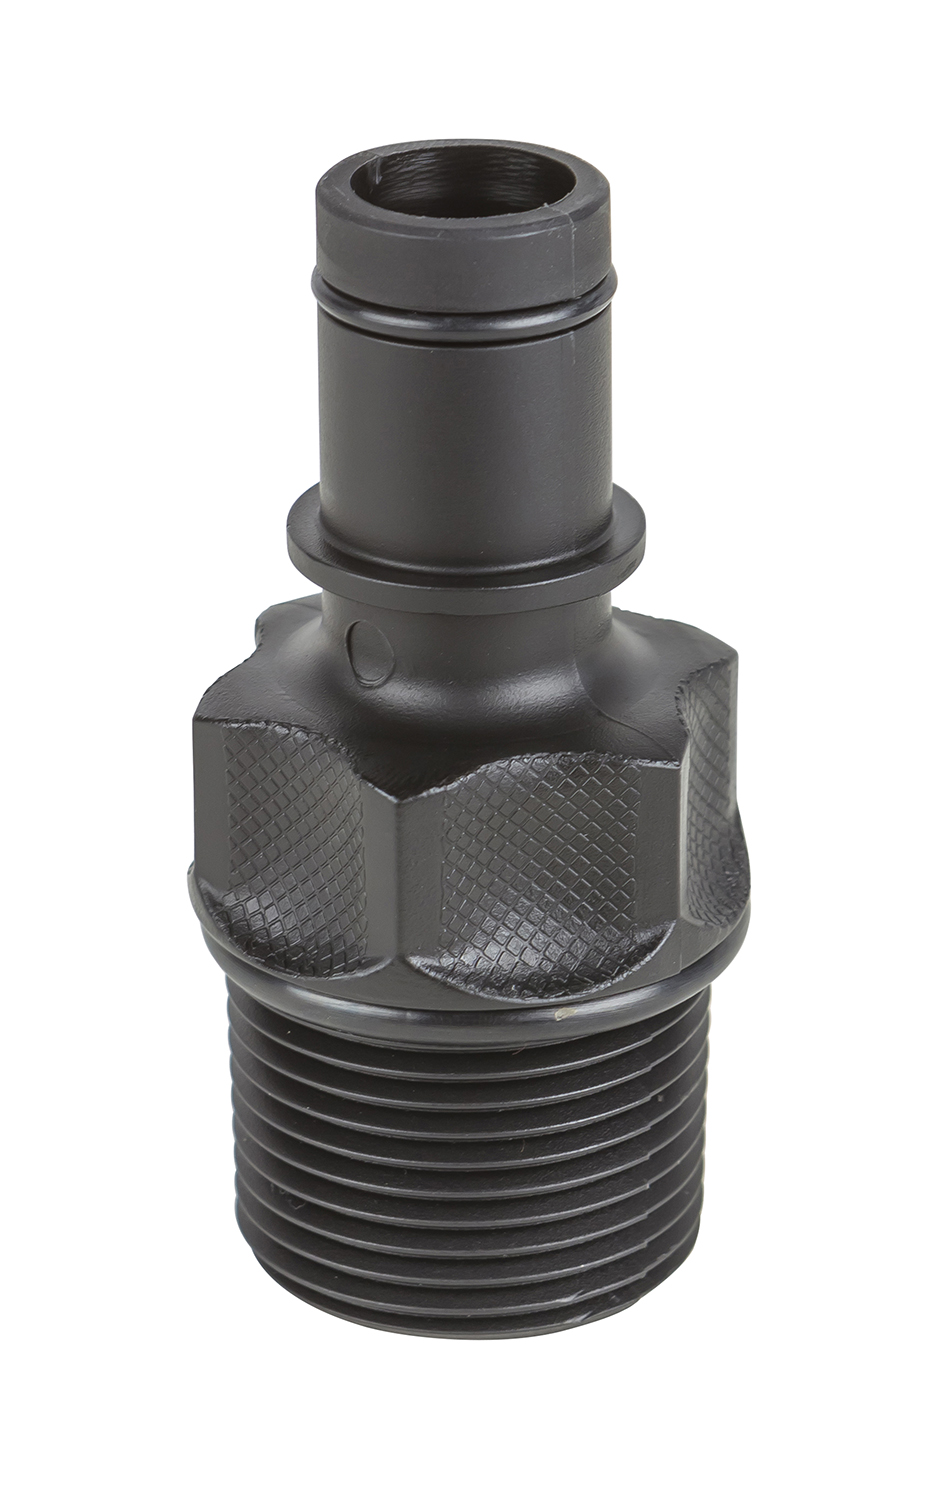 1'' NPT THREAD TO 3/4'' QUICK CONNECT ADAPTOR EIGHT.3 2018